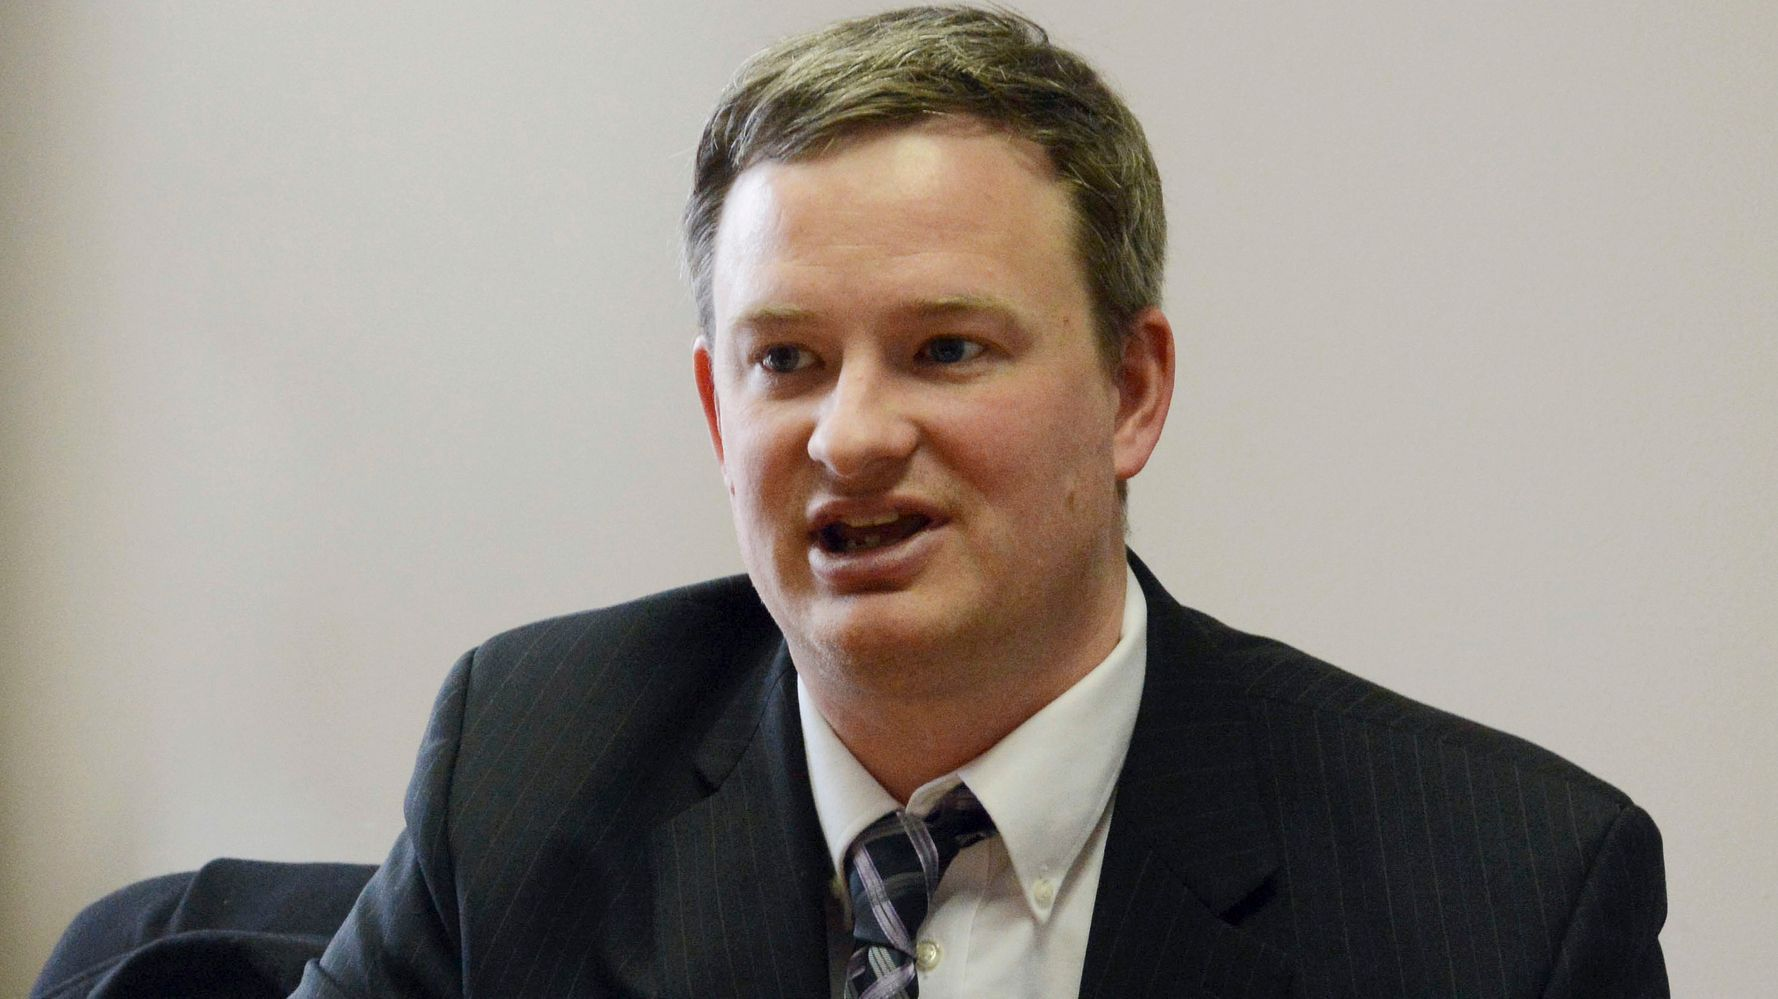 www.huffpost.com: Police Grill South Dakota AG About Not Noticing He Struck A Man With Car